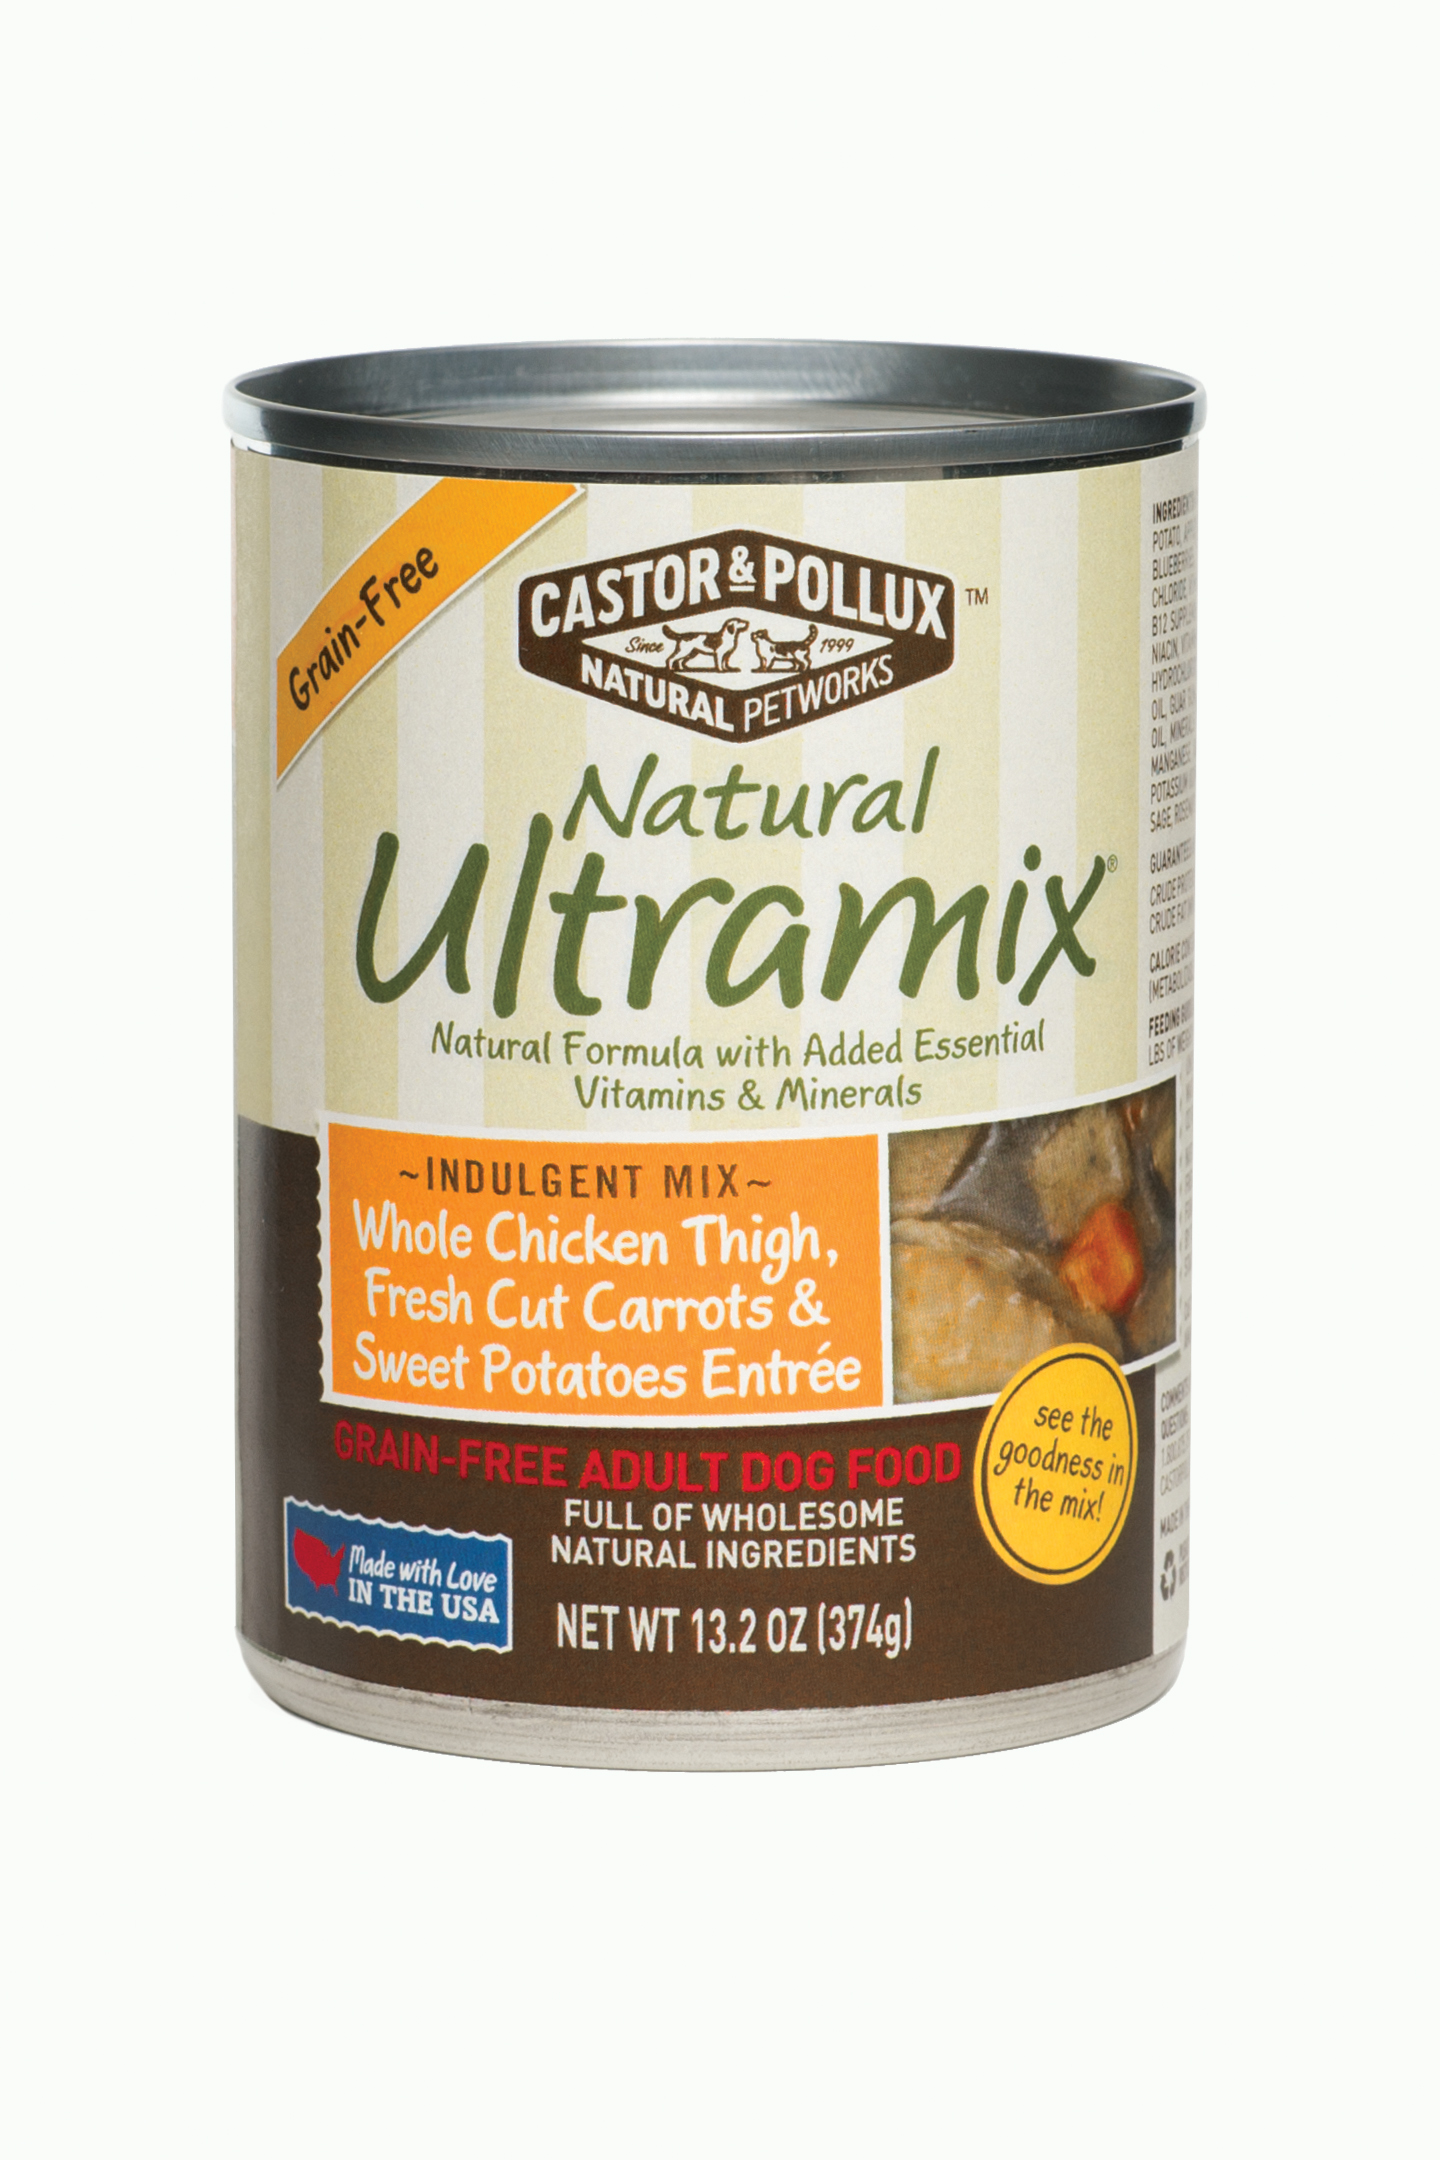 Castor And Pollux Canned Dog Food Review